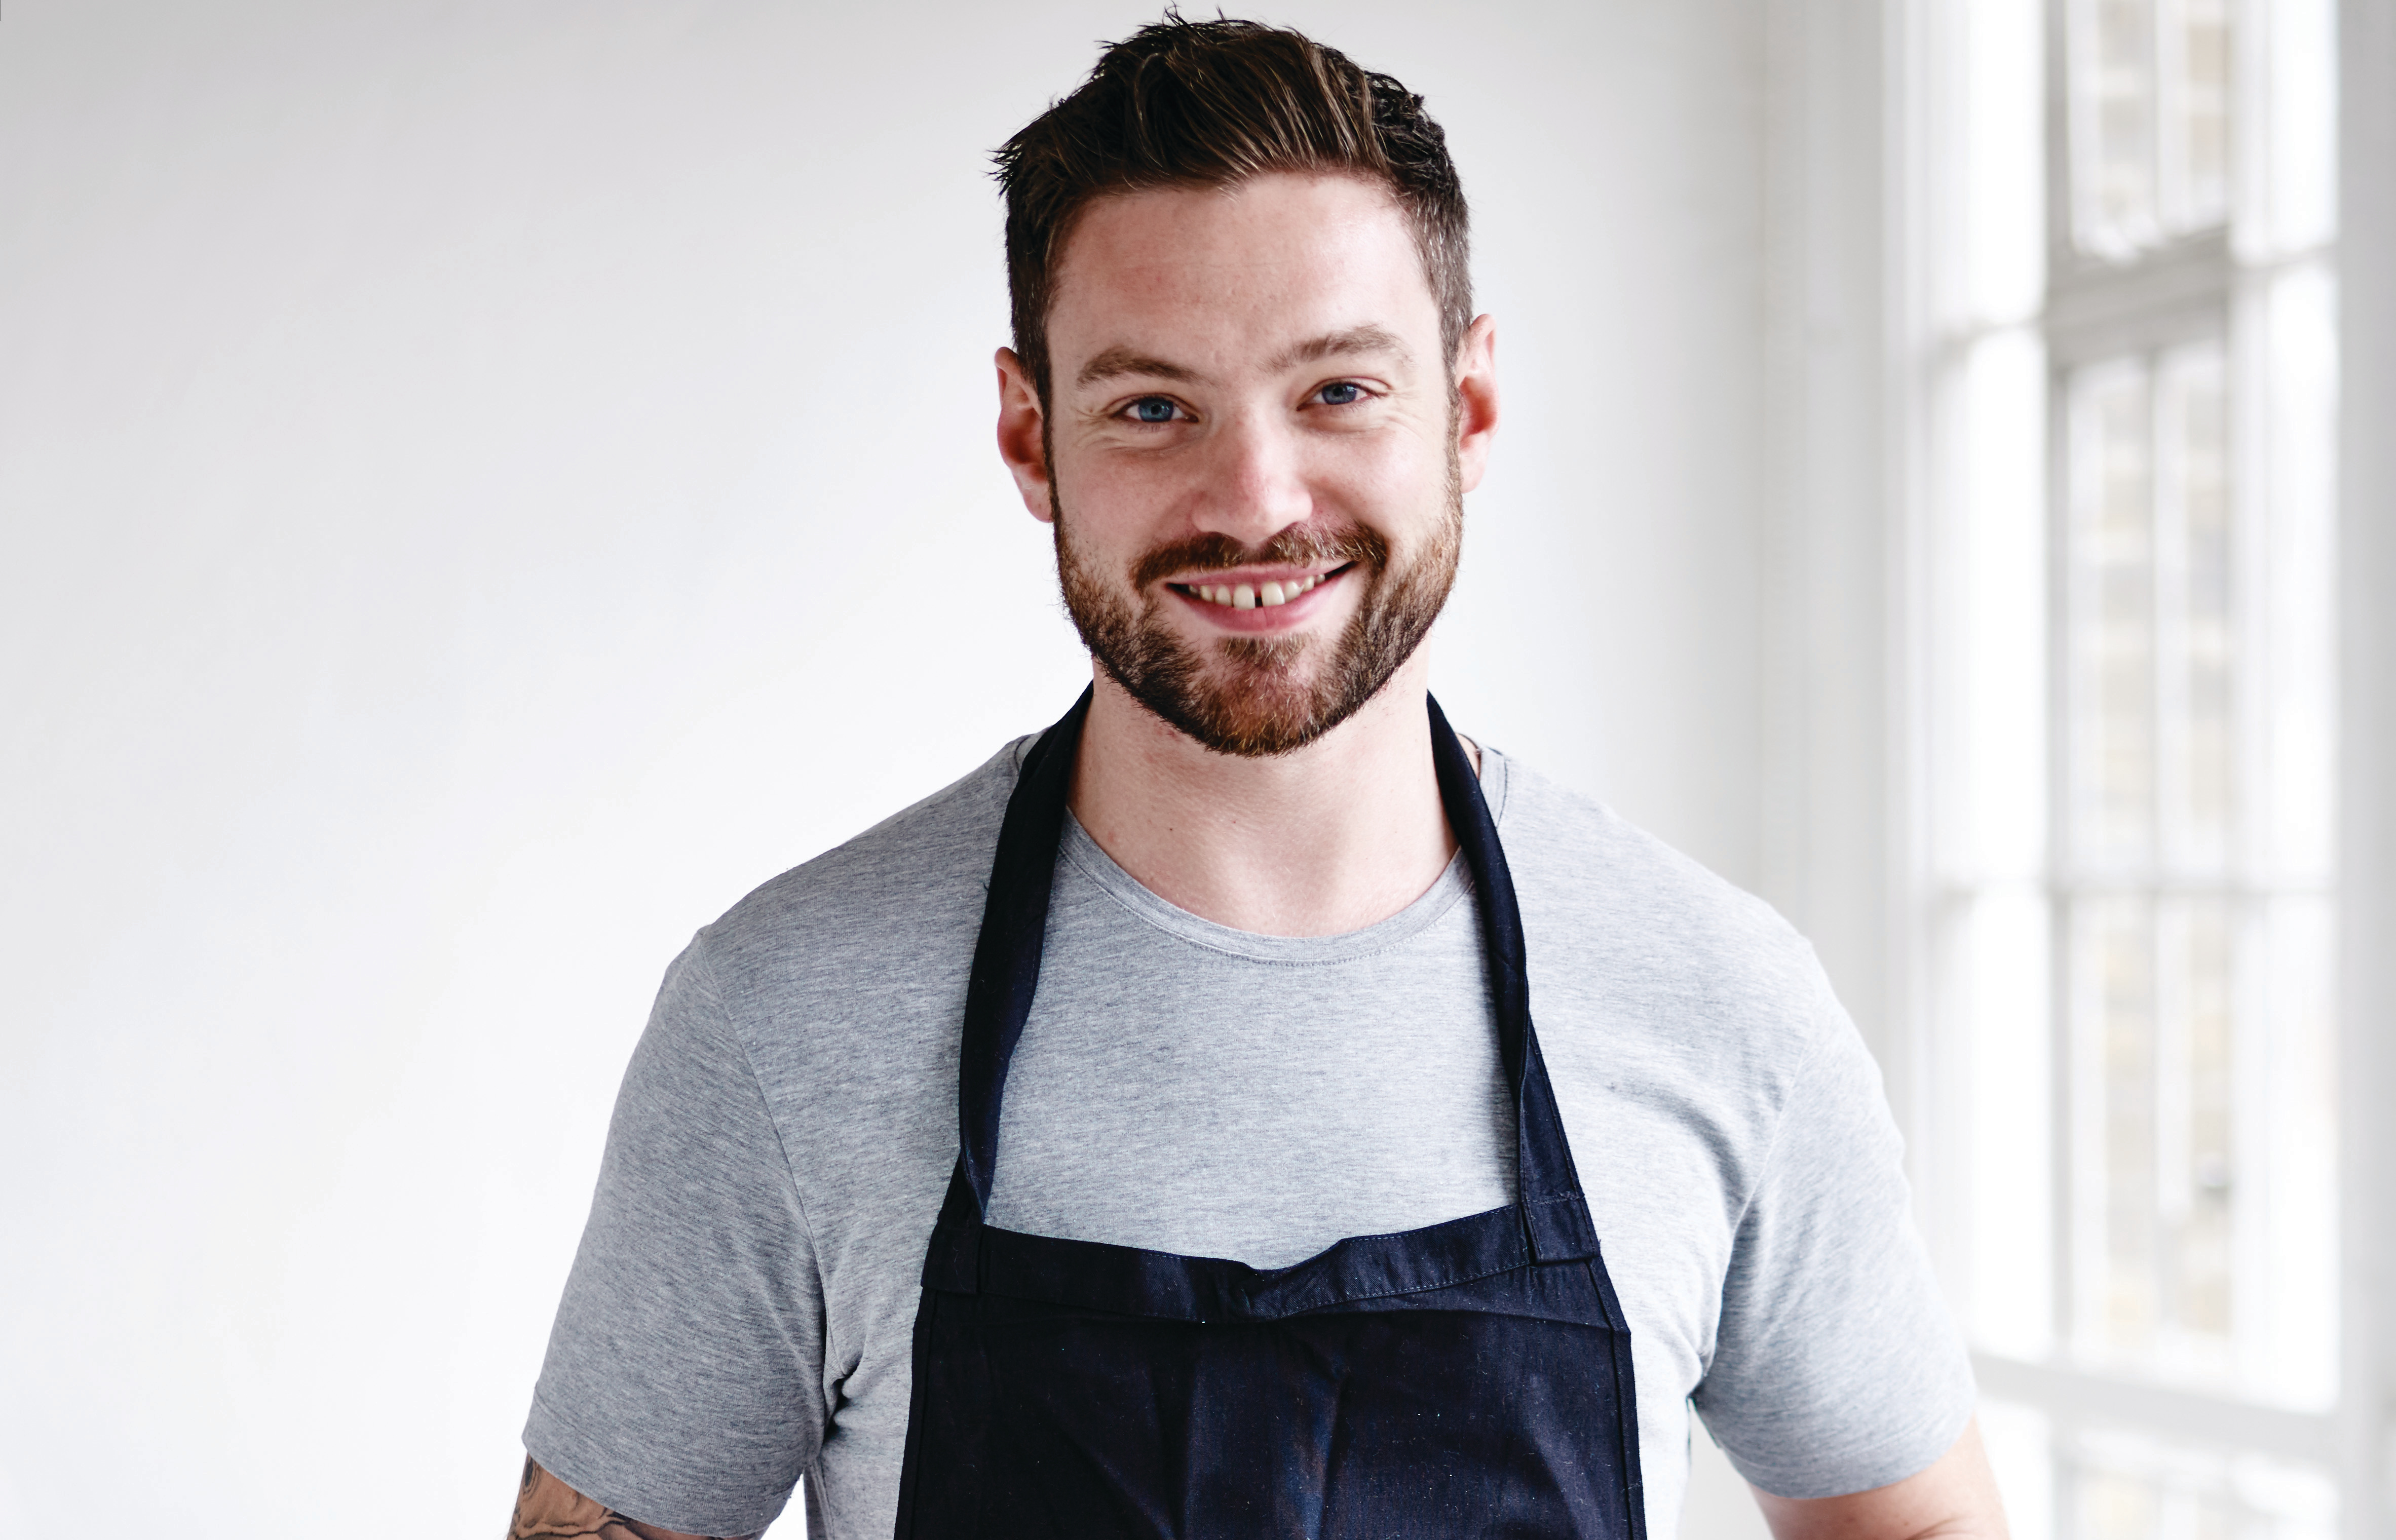 Chef Dan Doherty Attempts Restaurant Return After Being Found Guilty of Misconduct